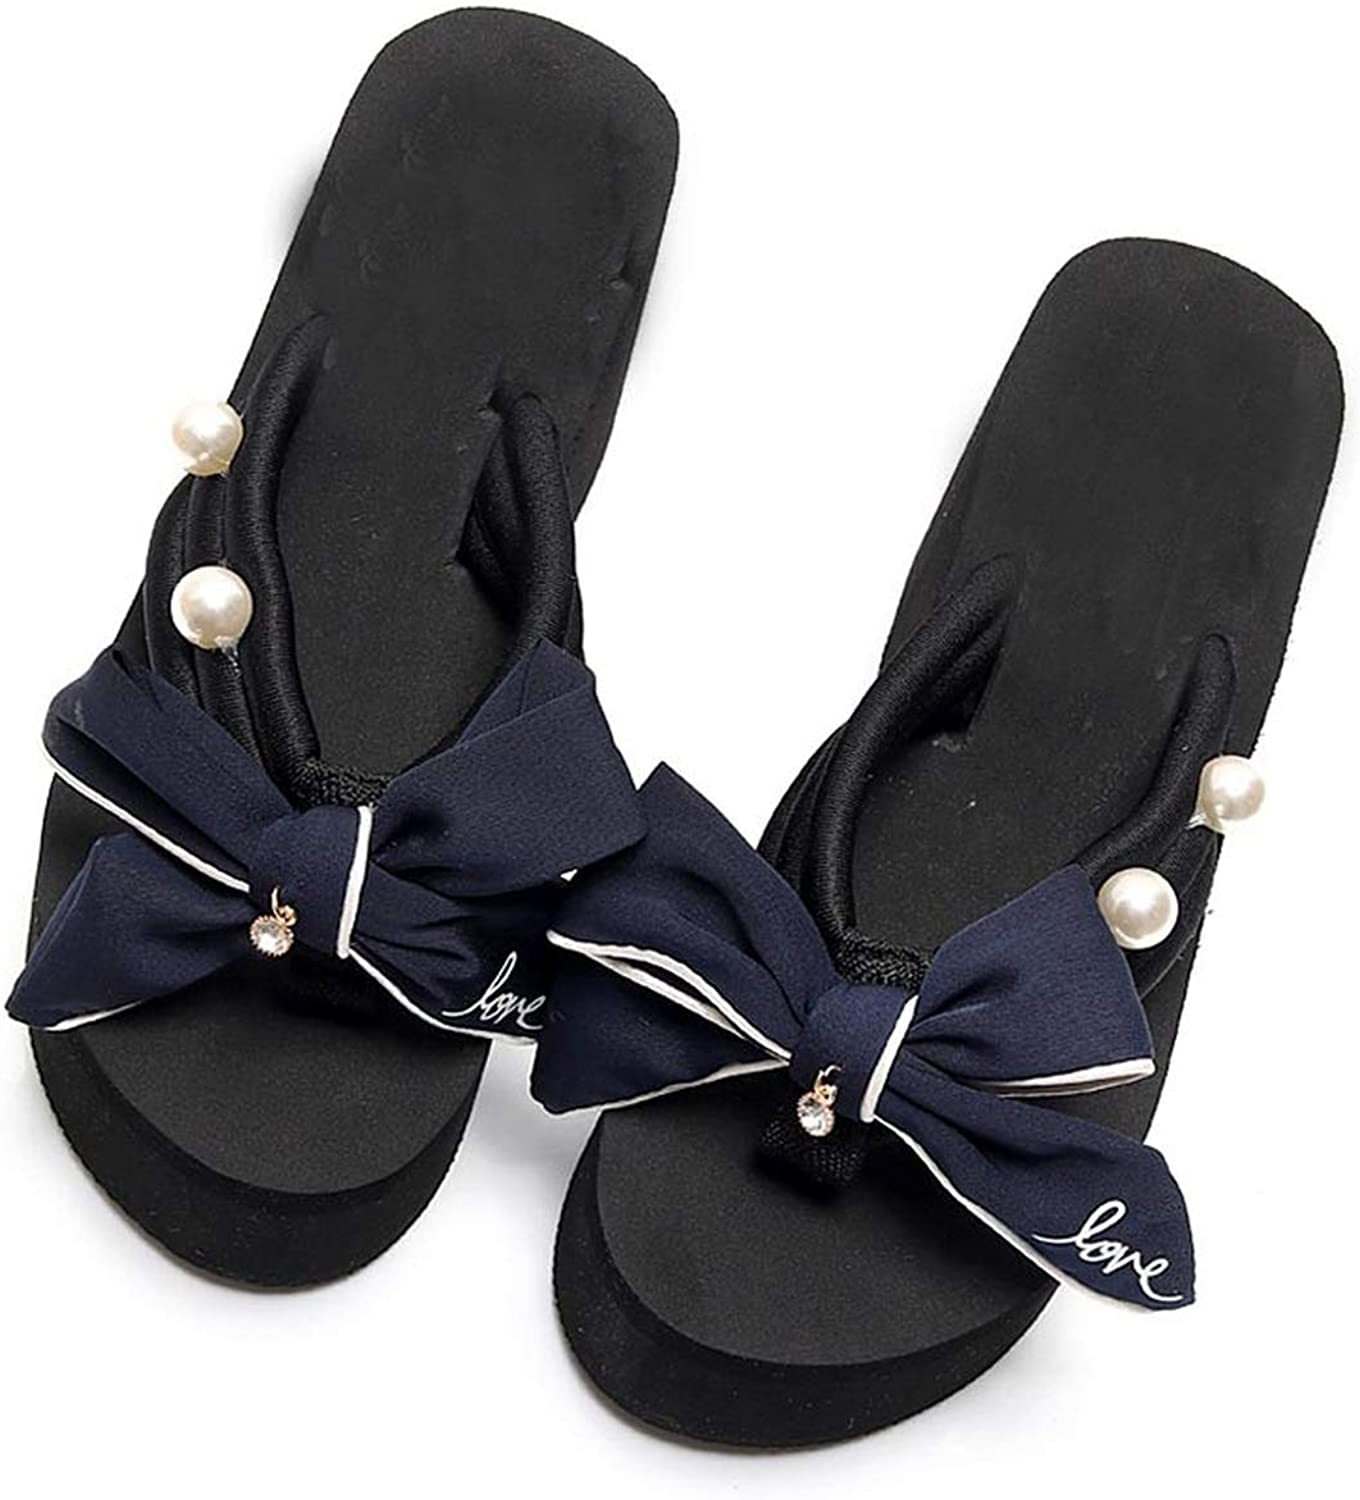 Indoor Plush Size House Shoes Woman Women Ladies Girls Pearl Bowknot Wedges Flip Flops Sandals Slippers Beach Shoes#515,Black,37,United States